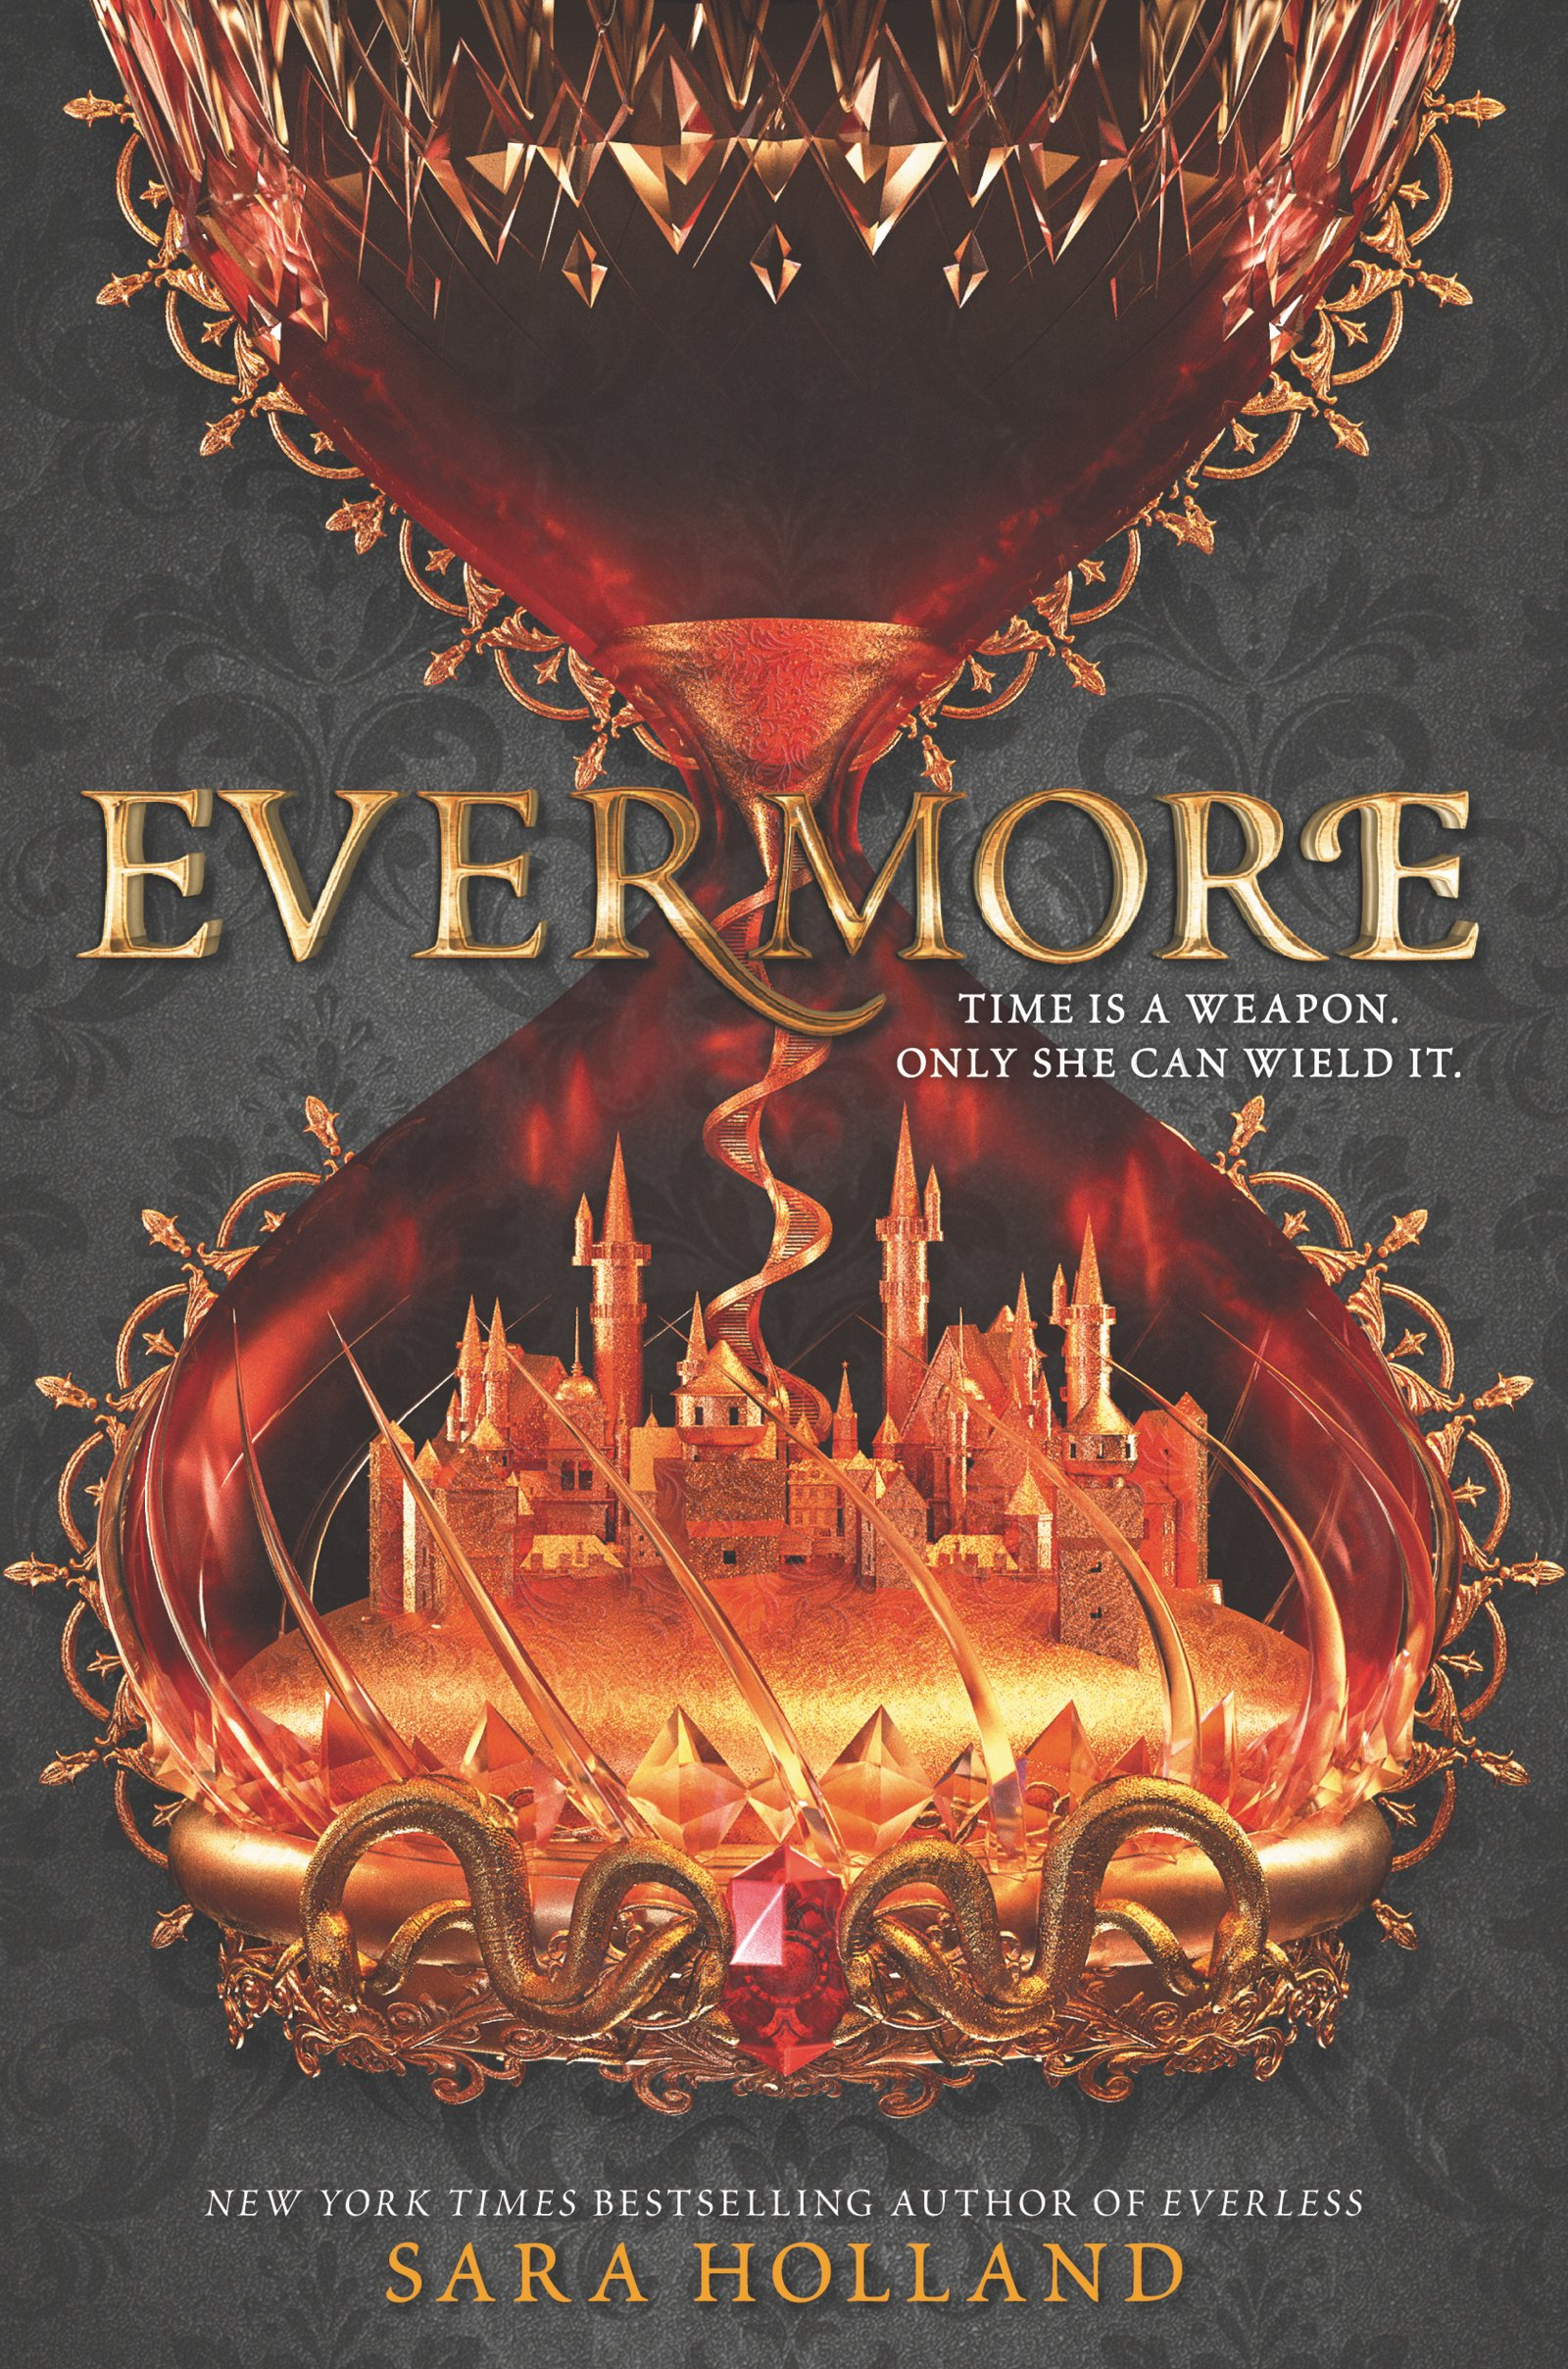 Evermore by Sarah Holland